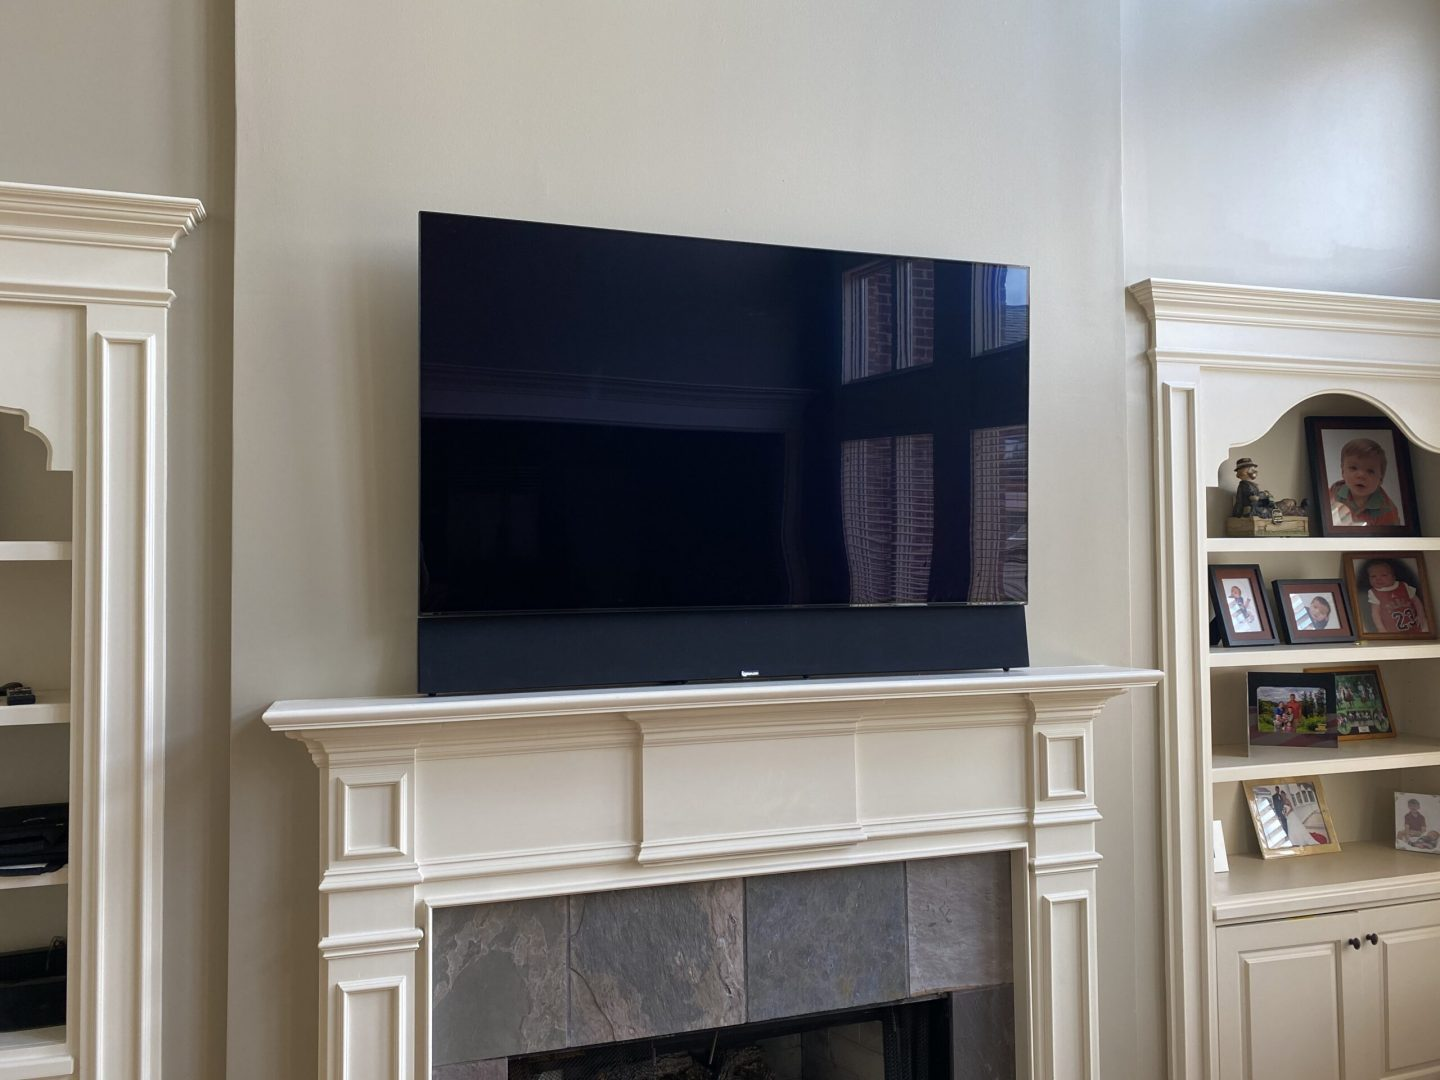 TV install with Home theater installation for luxury living